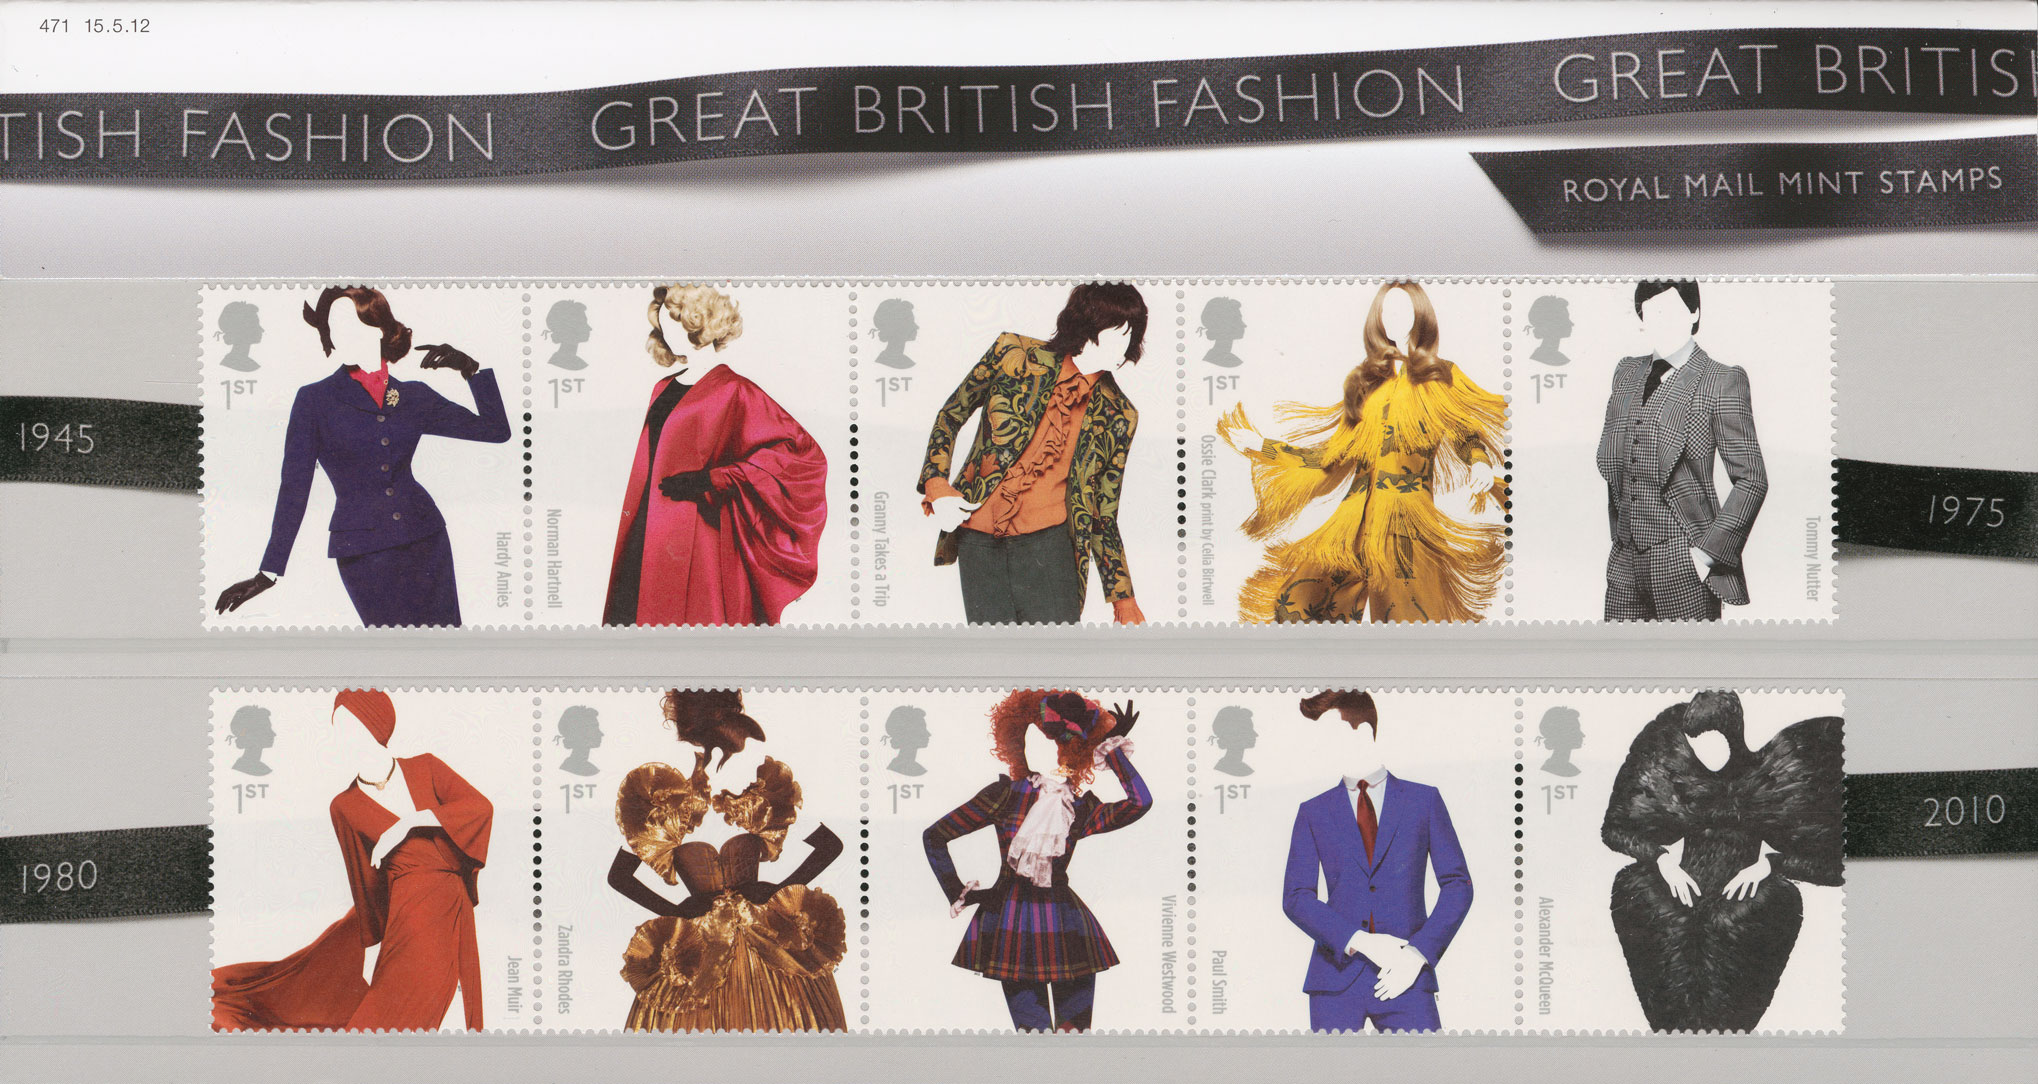 A Presentation Pack consisting of 10 stamps of models wearing clothes by different designers.